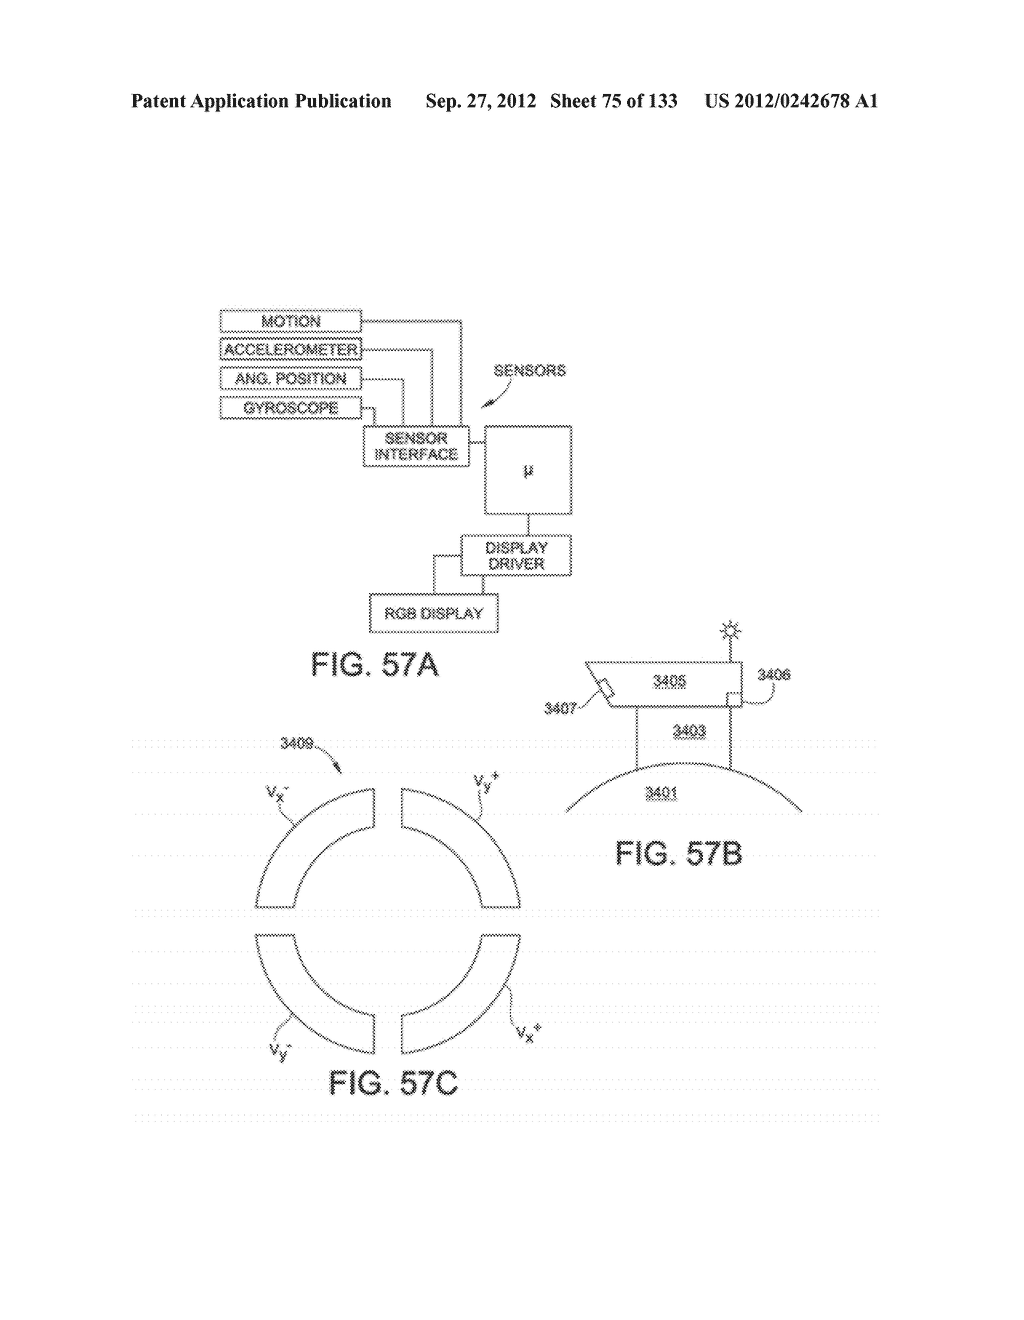 SEE-THROUGH NEAR-EYE DISPLAY GLASSES INCLUDING AN AUTO-BRIGHTNESS CONTROL     FOR THE DISPLAY BRIGHTNESS BASED ON THE BRIGHTNESS IN THE ENVIRONMENT - diagram, schematic, and image 76